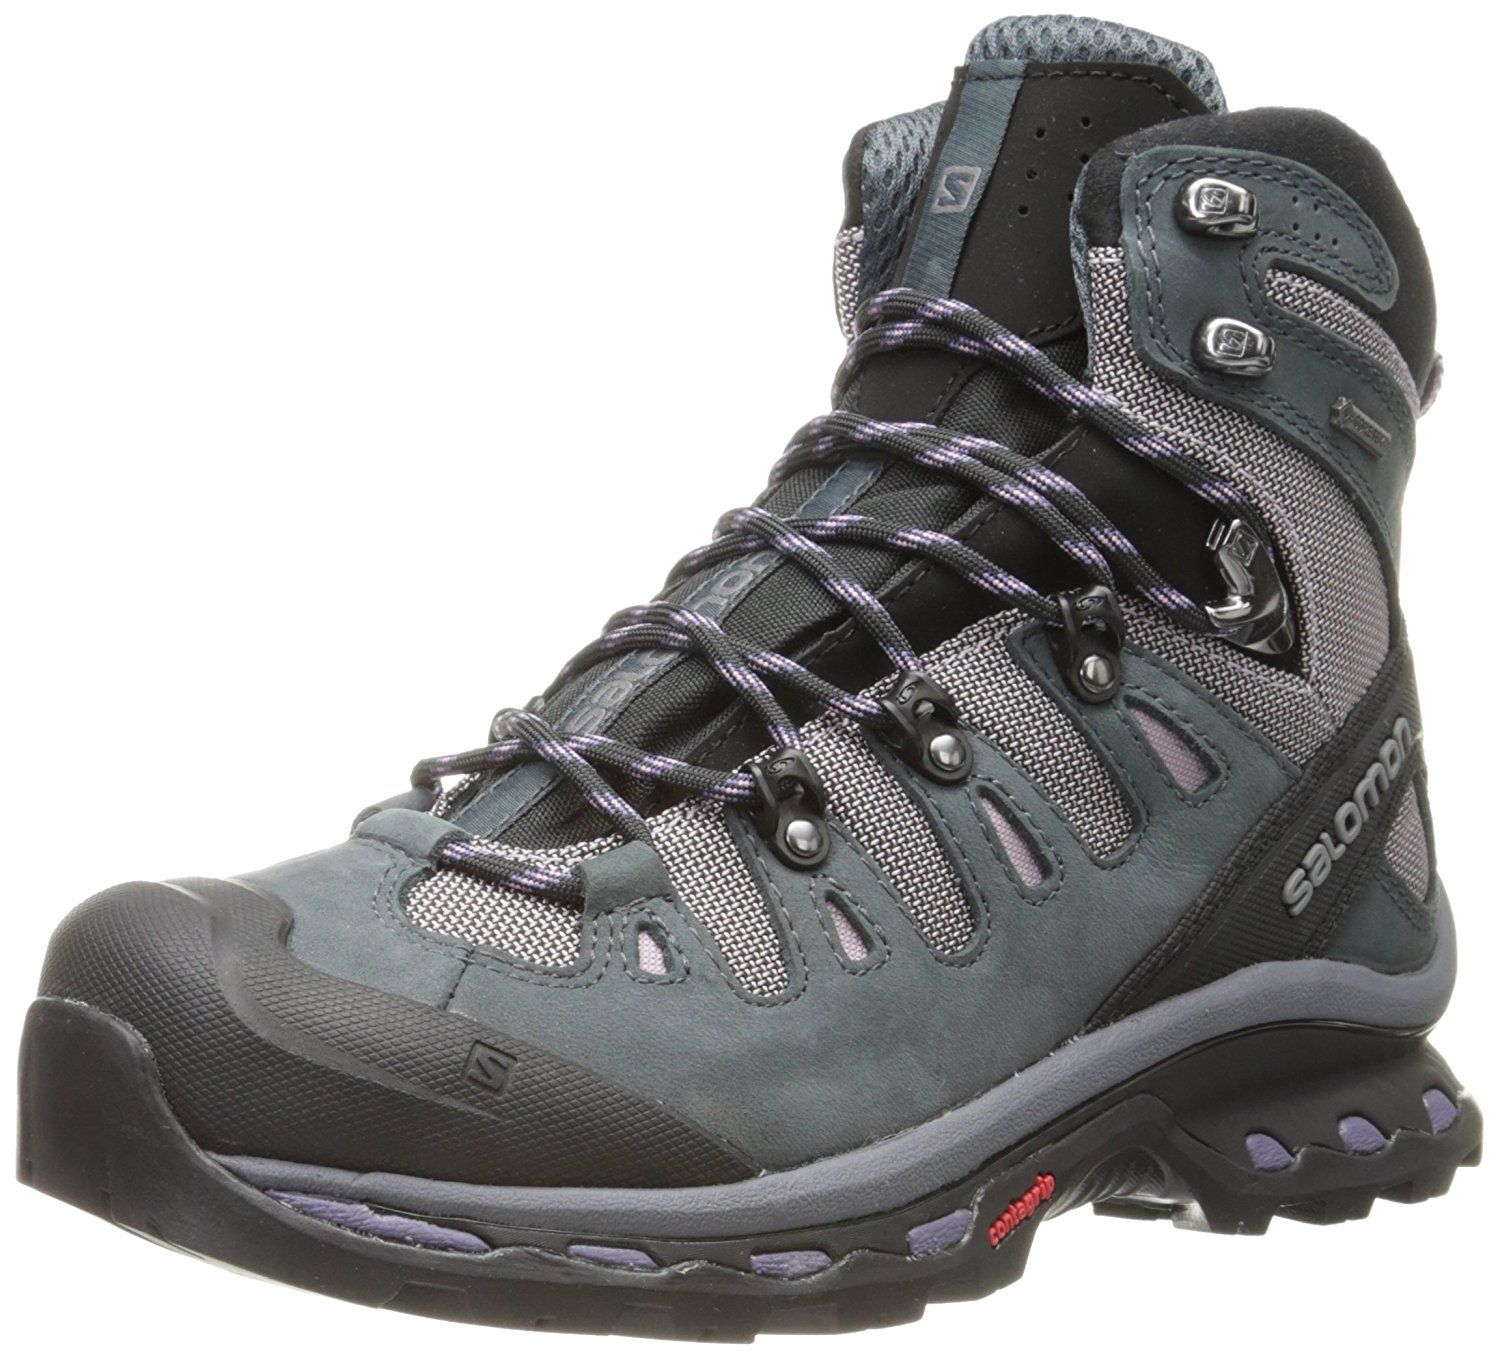 Salomon Women's Quest 4D 2 GTX Hiking Boot * New and awesome boots awaits you, Read it now  : Ankle Boots